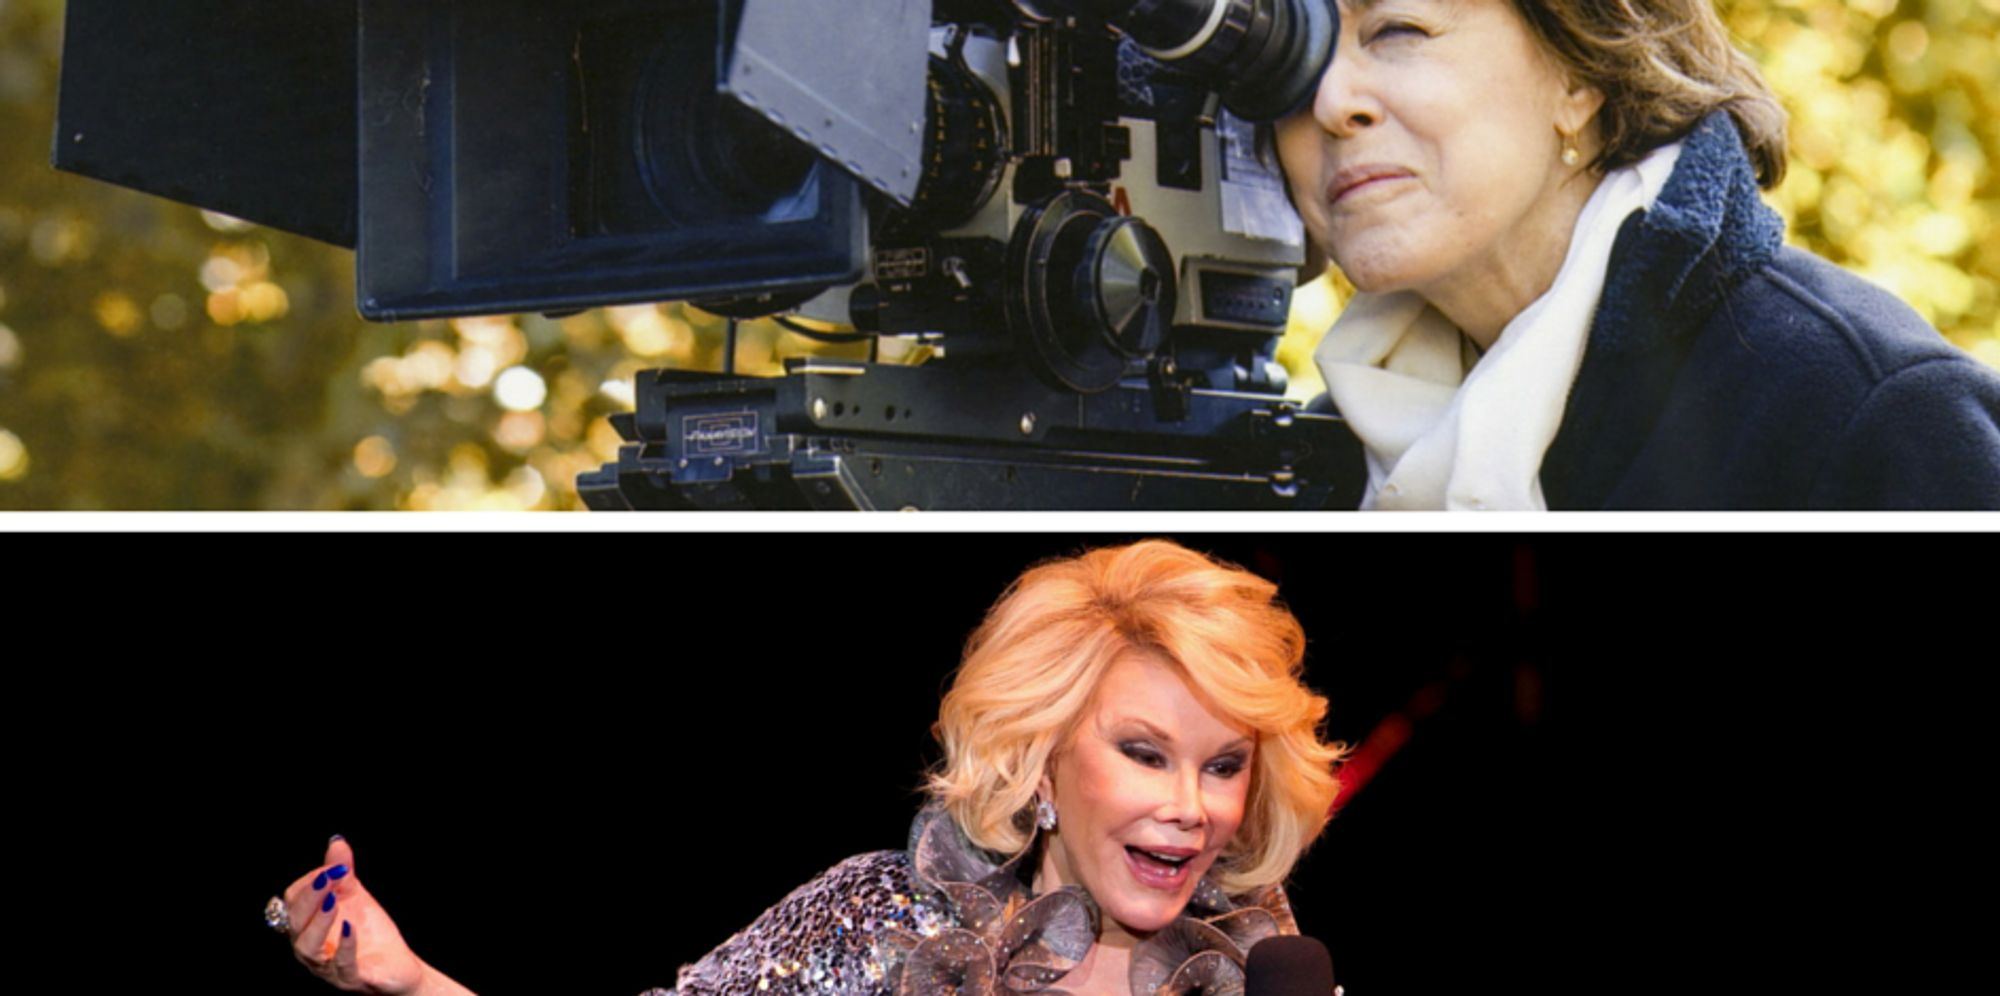 nora ephron pictures videos breaking news two new documentaries extend joan rivers and nora ephron s legacies